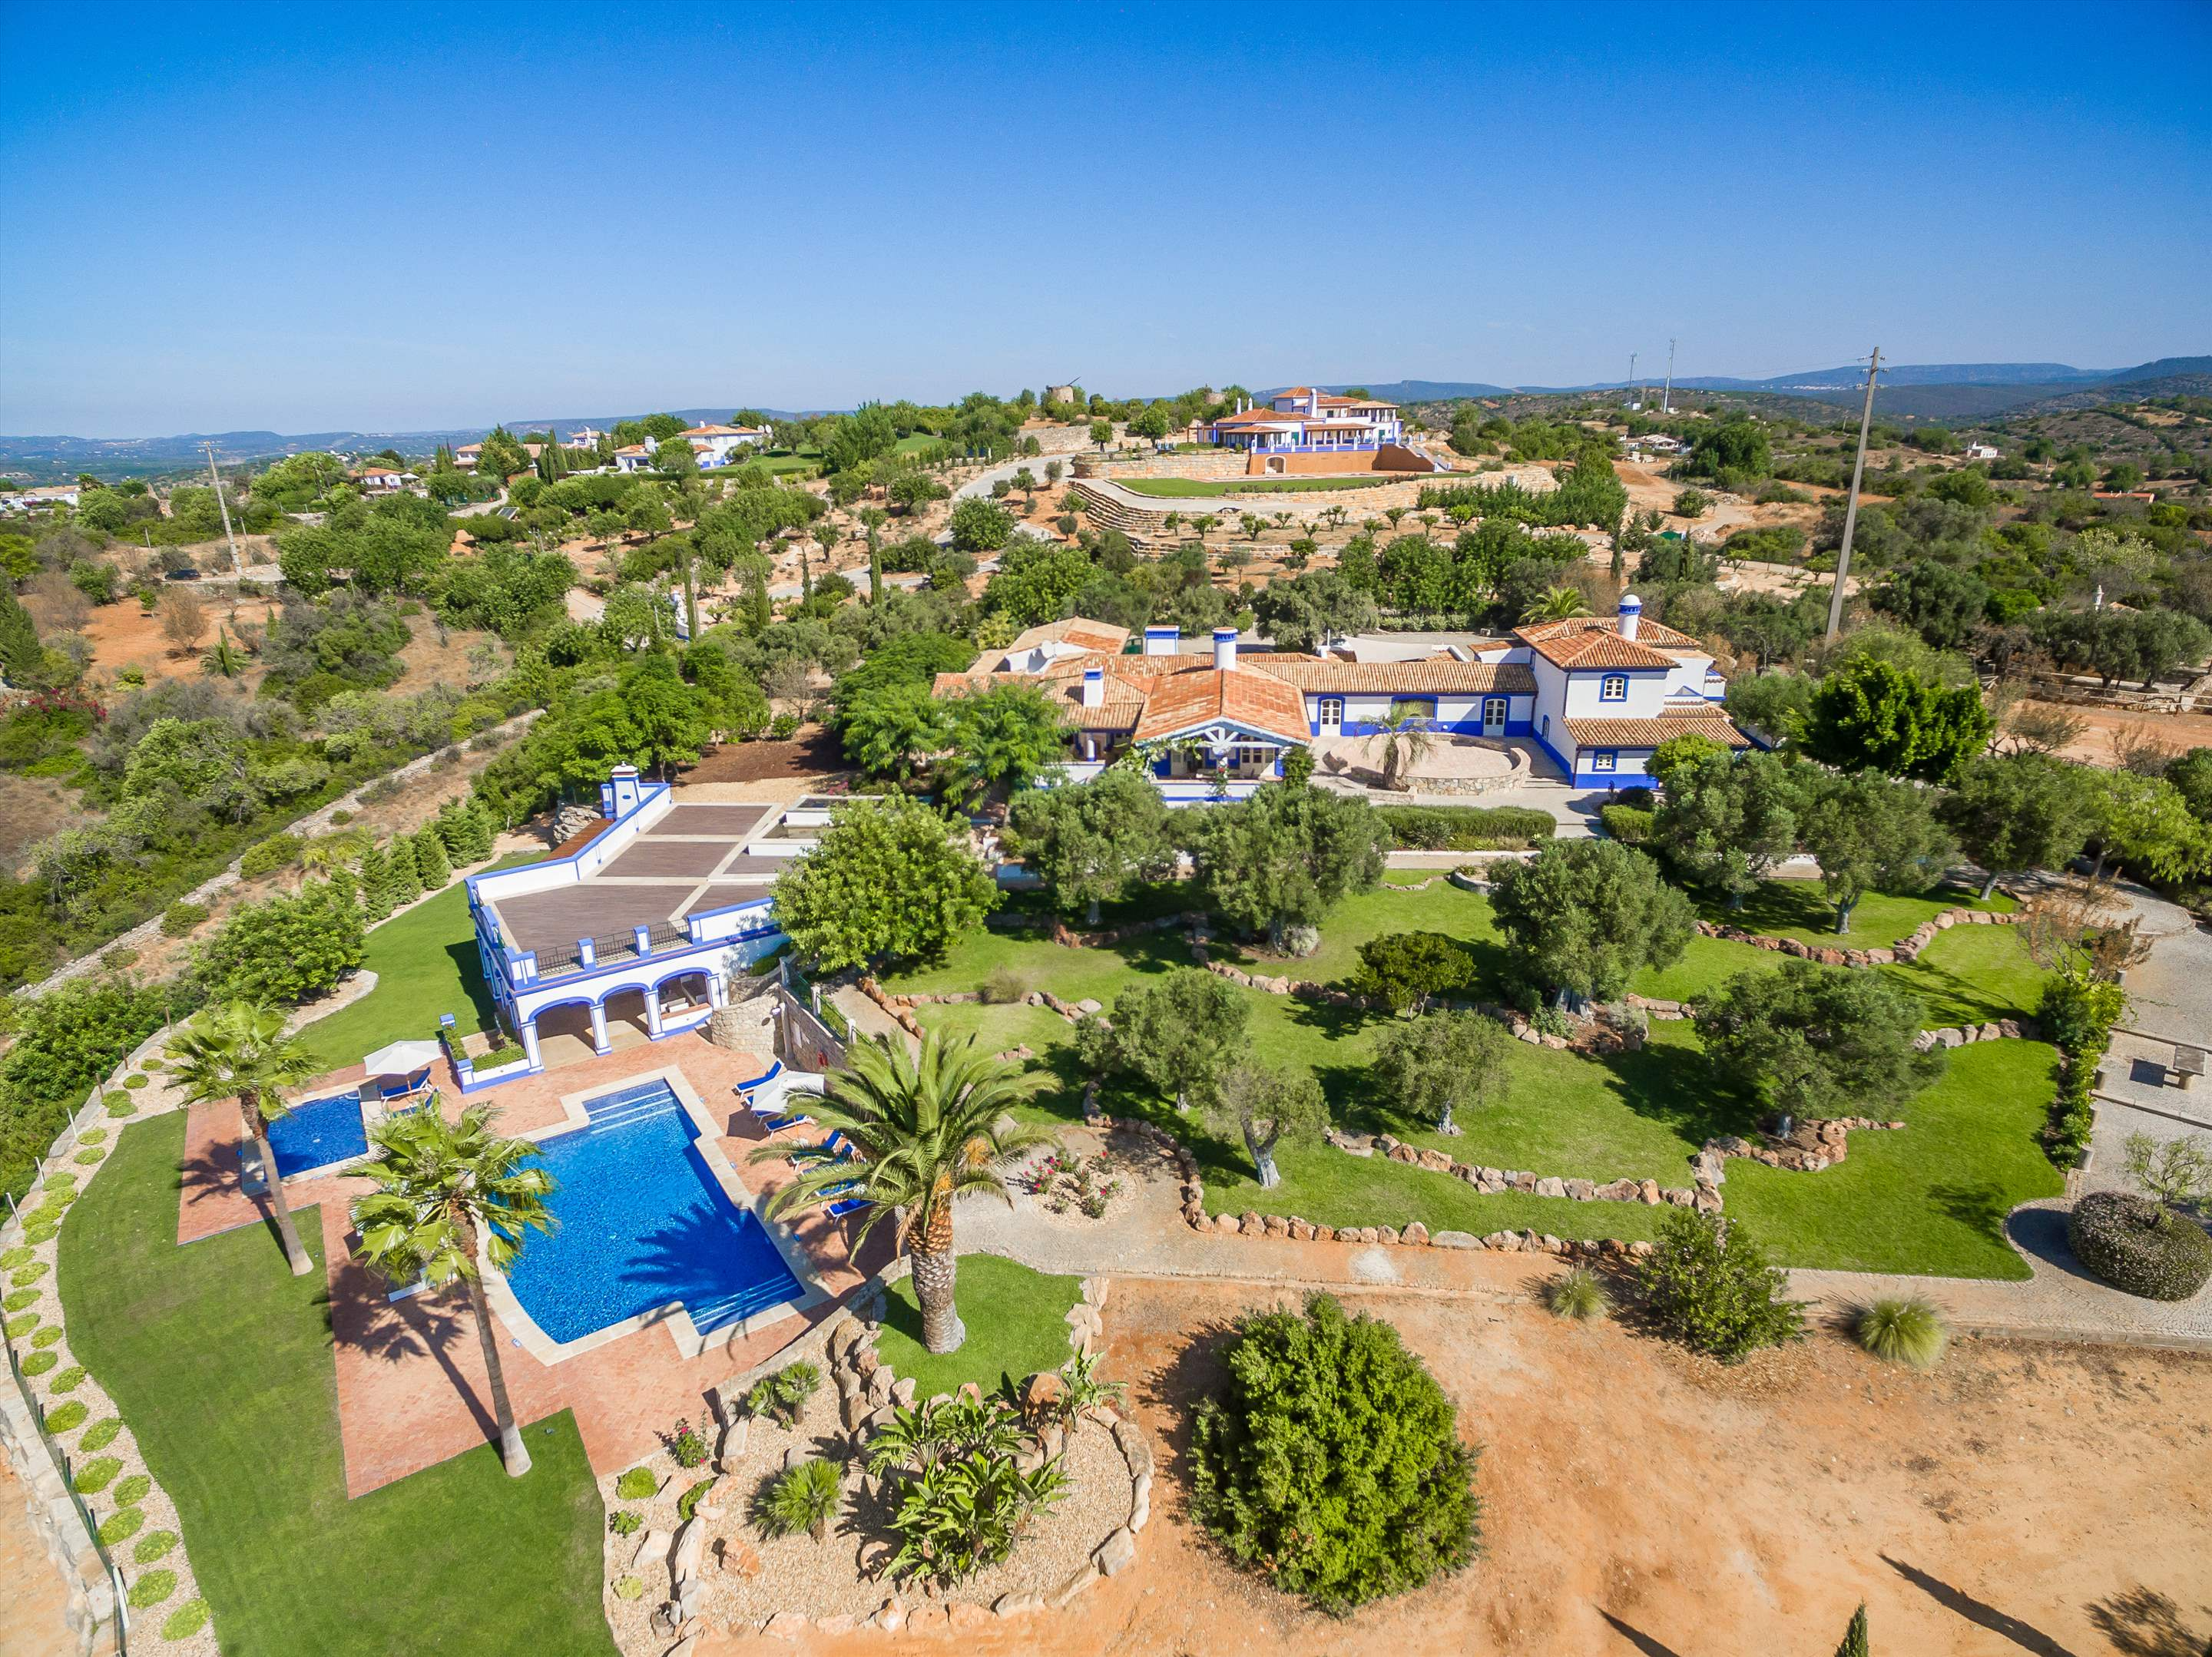 Casa Alemao, Main House, 5 Bedrooms, 5 bedroom villa in Vilamoura Area, Algarve